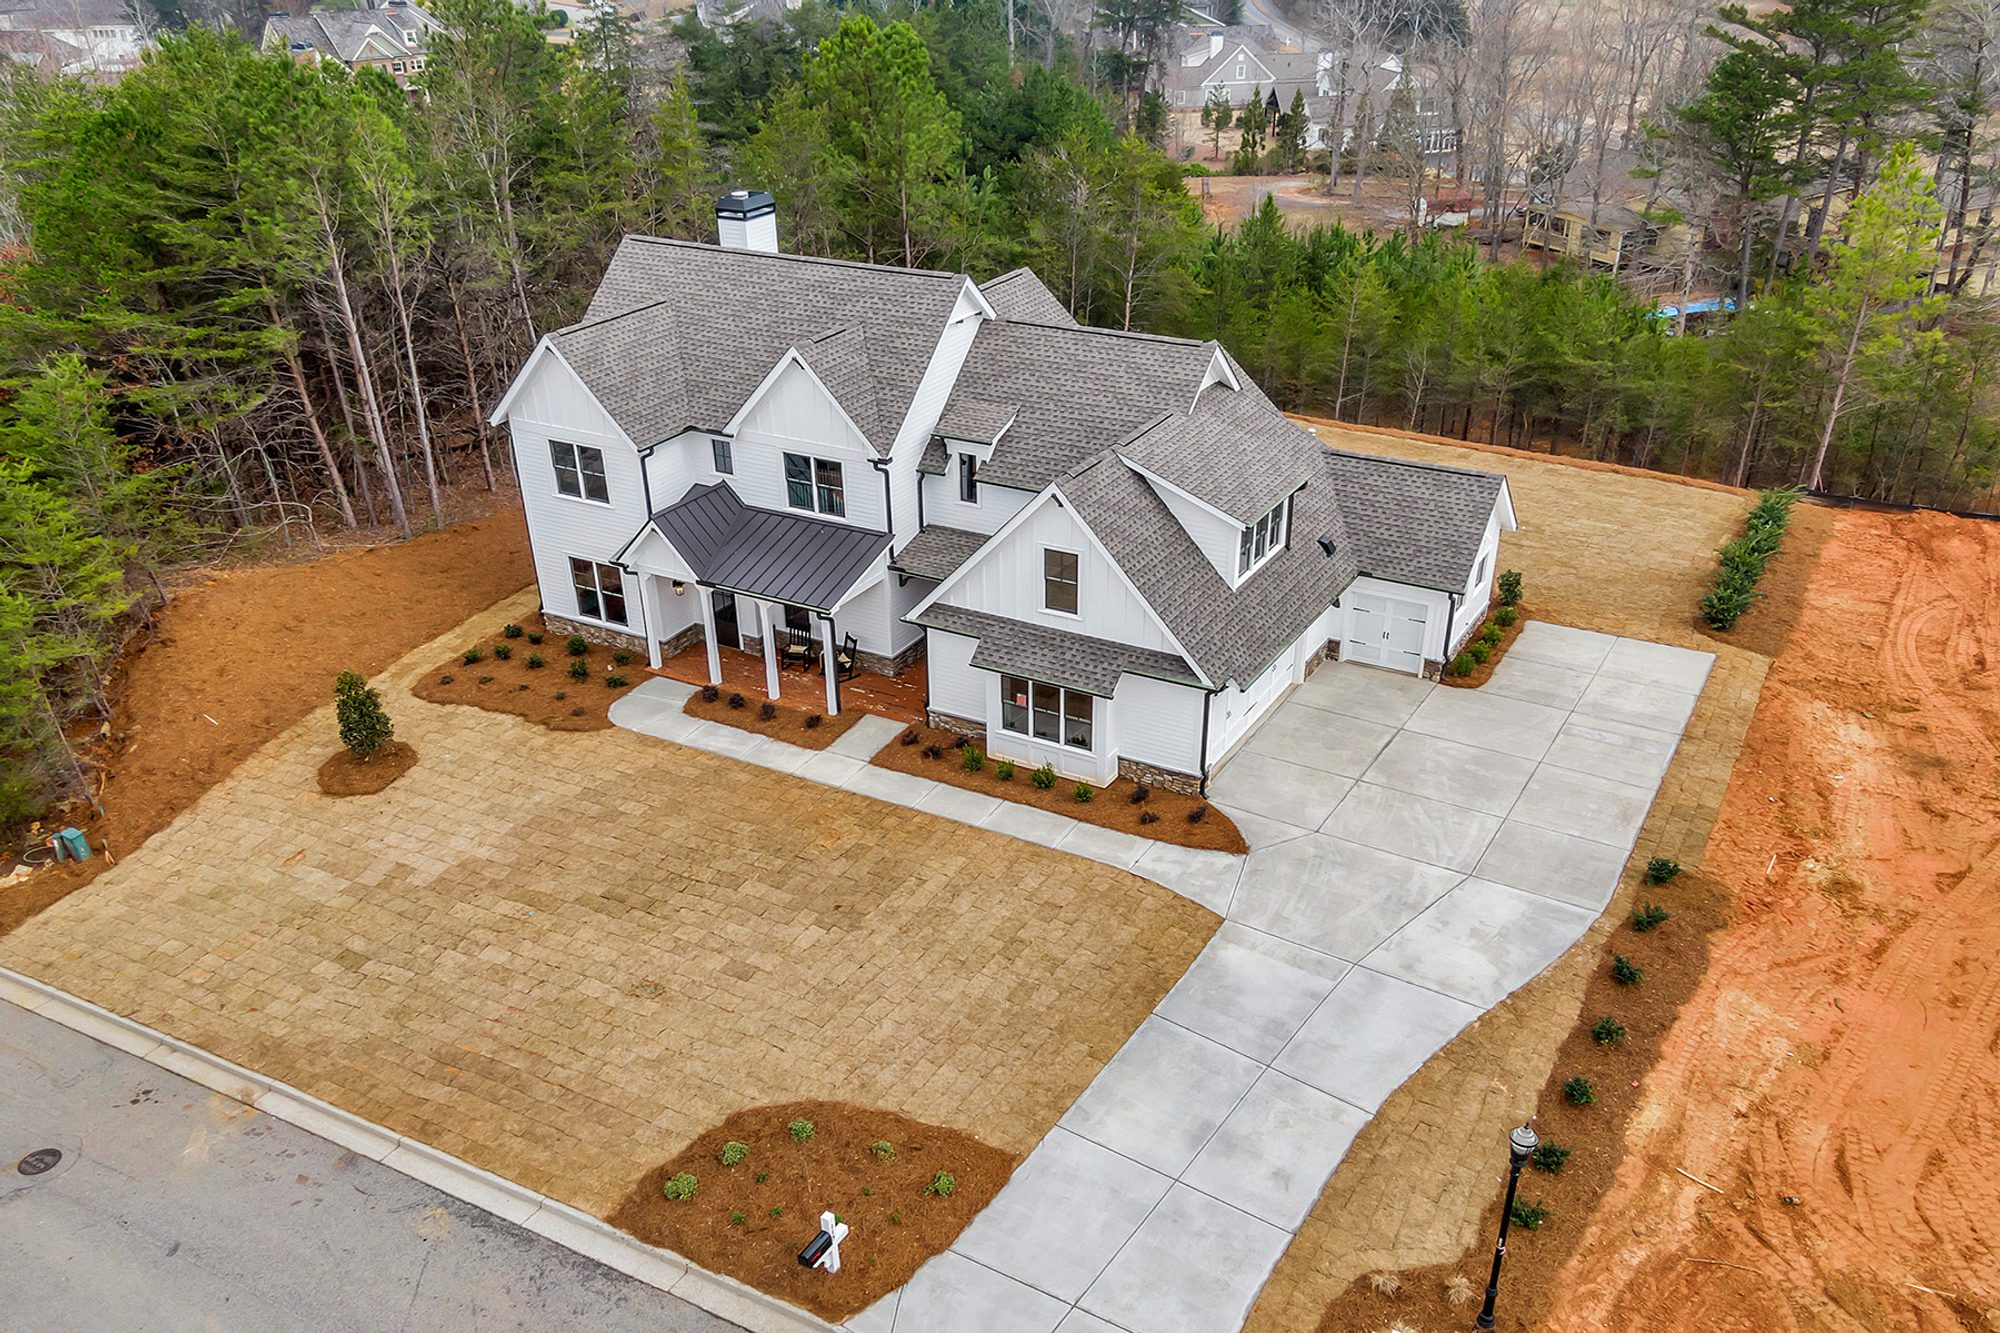 Ariel view of a beautiful Modern Farmhouse style new home featuring a white and black color scheme.